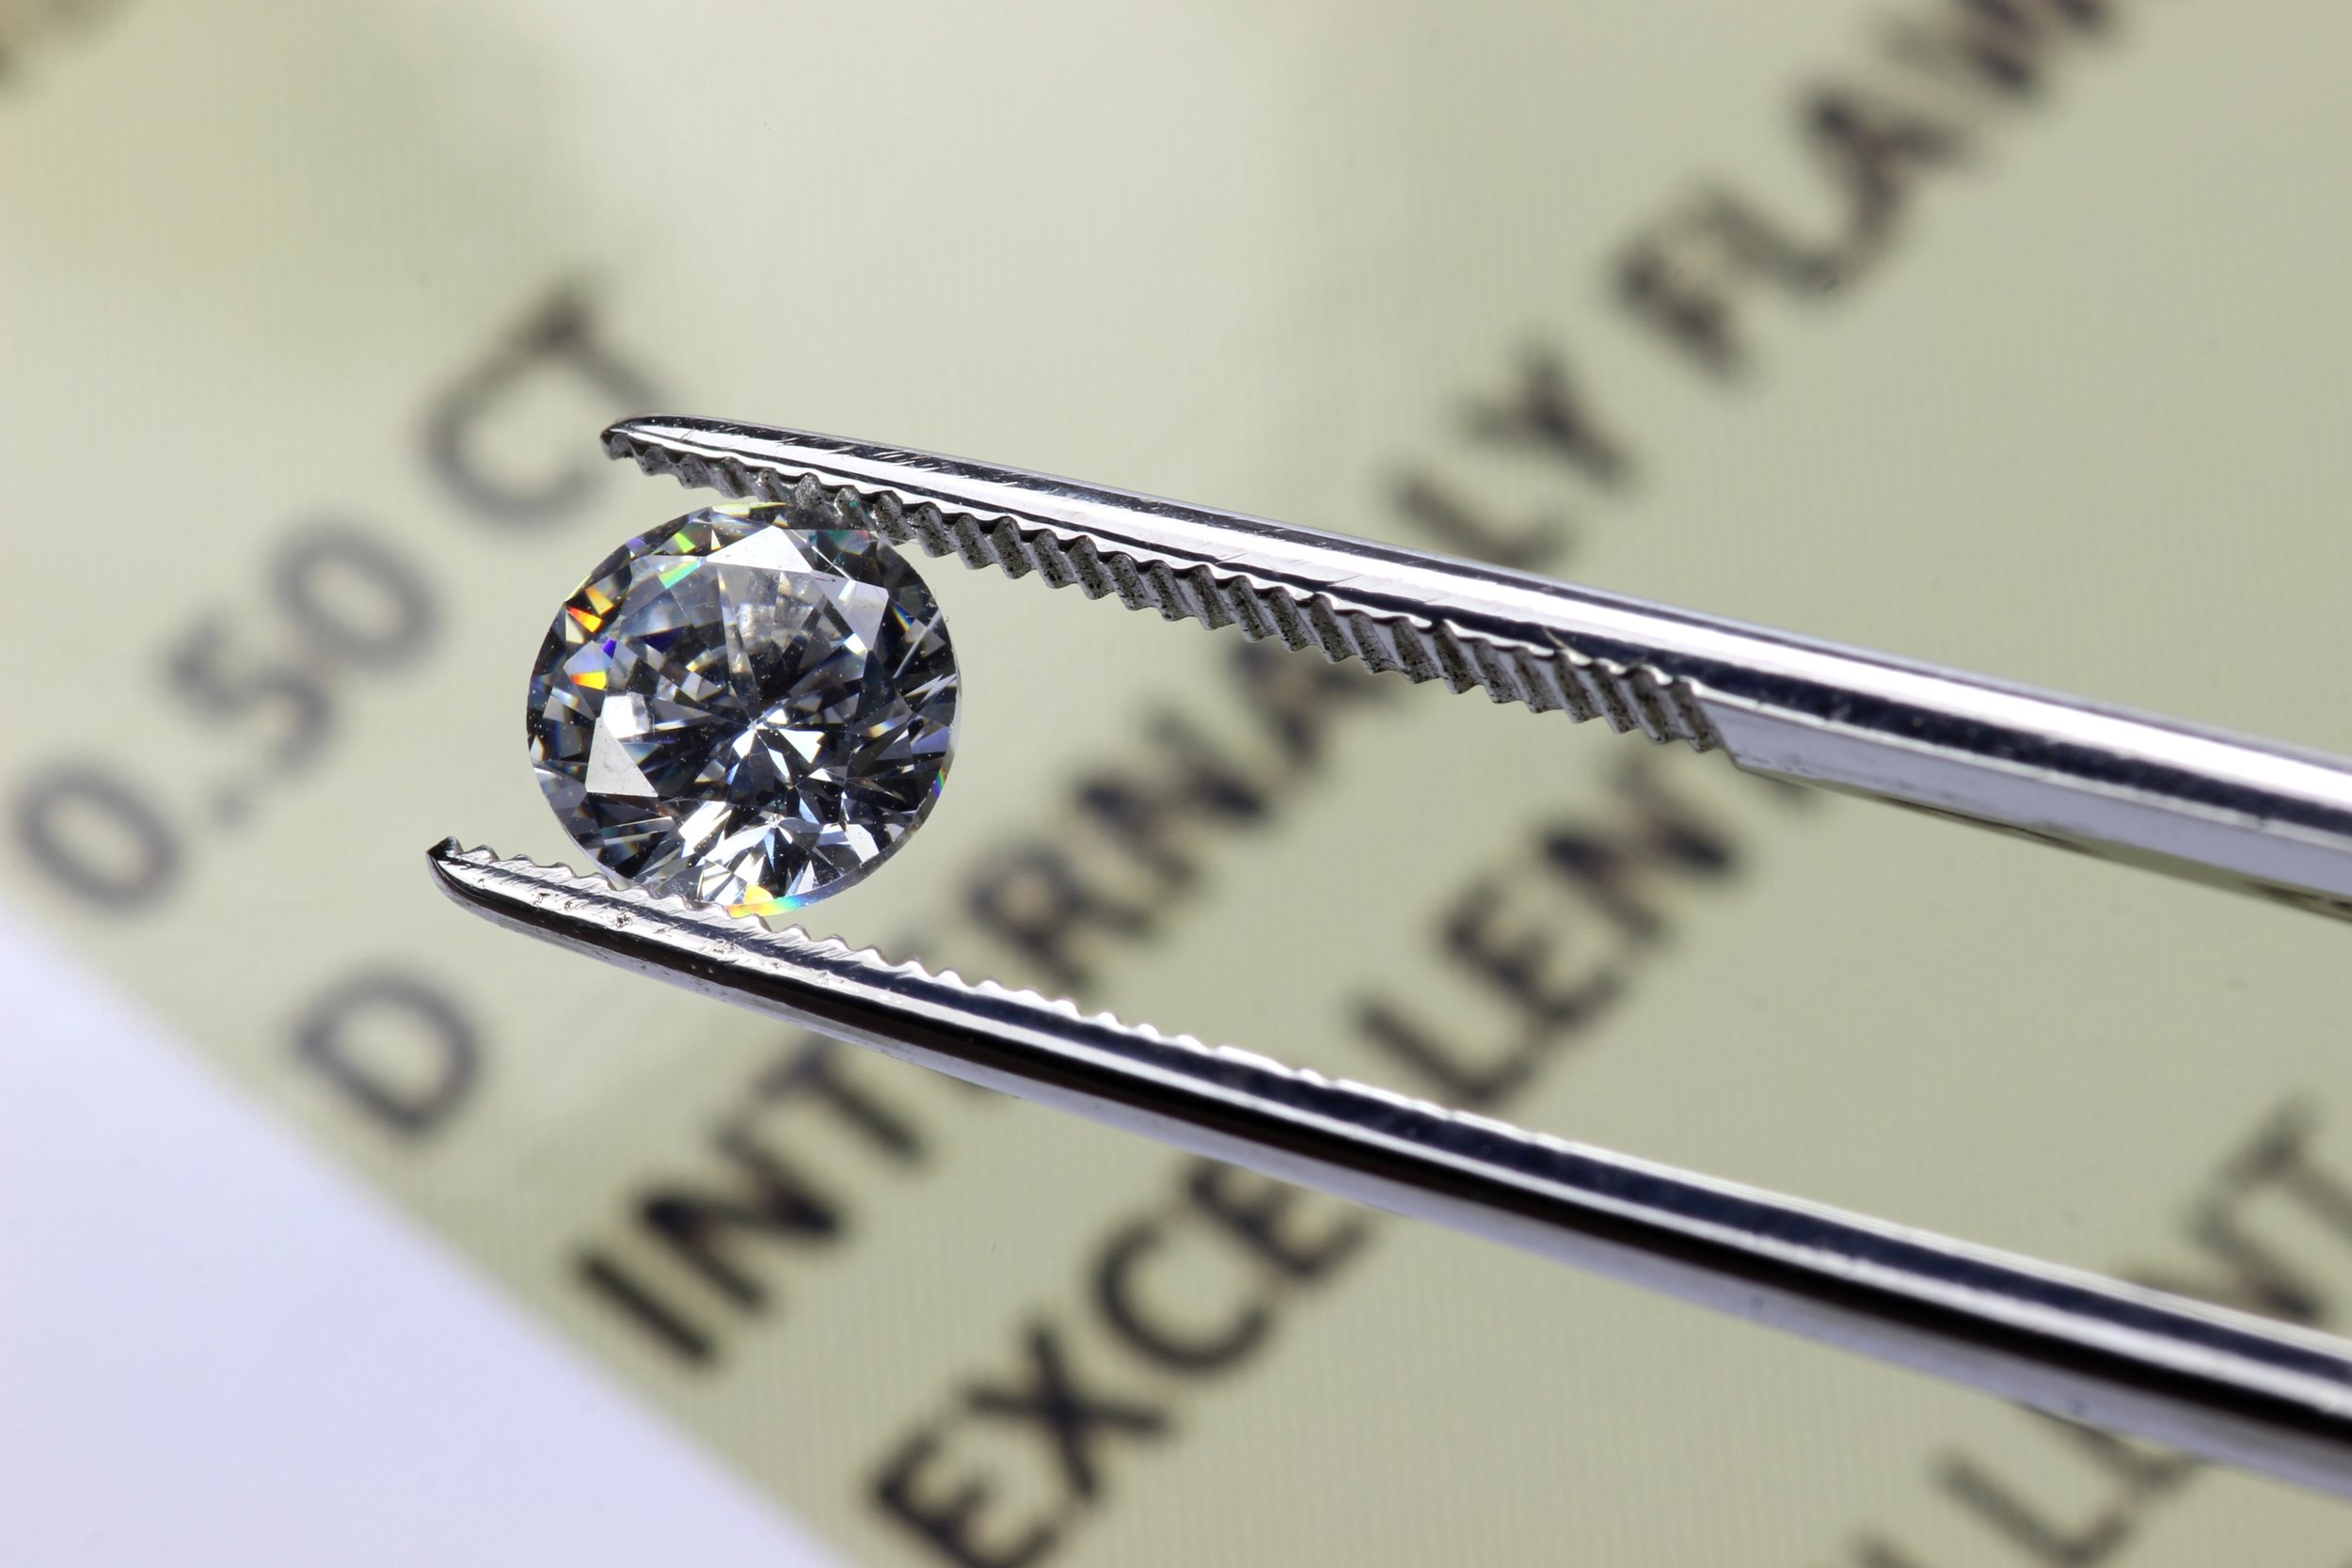 3. Authentication & Certification - A written description should be provided, with measurements and gemstones identified. Independent grading reports from a reputable source such as the GIA should be offered to back up the sellers descriptions. Any claims of provenance or history should be clearly explained.